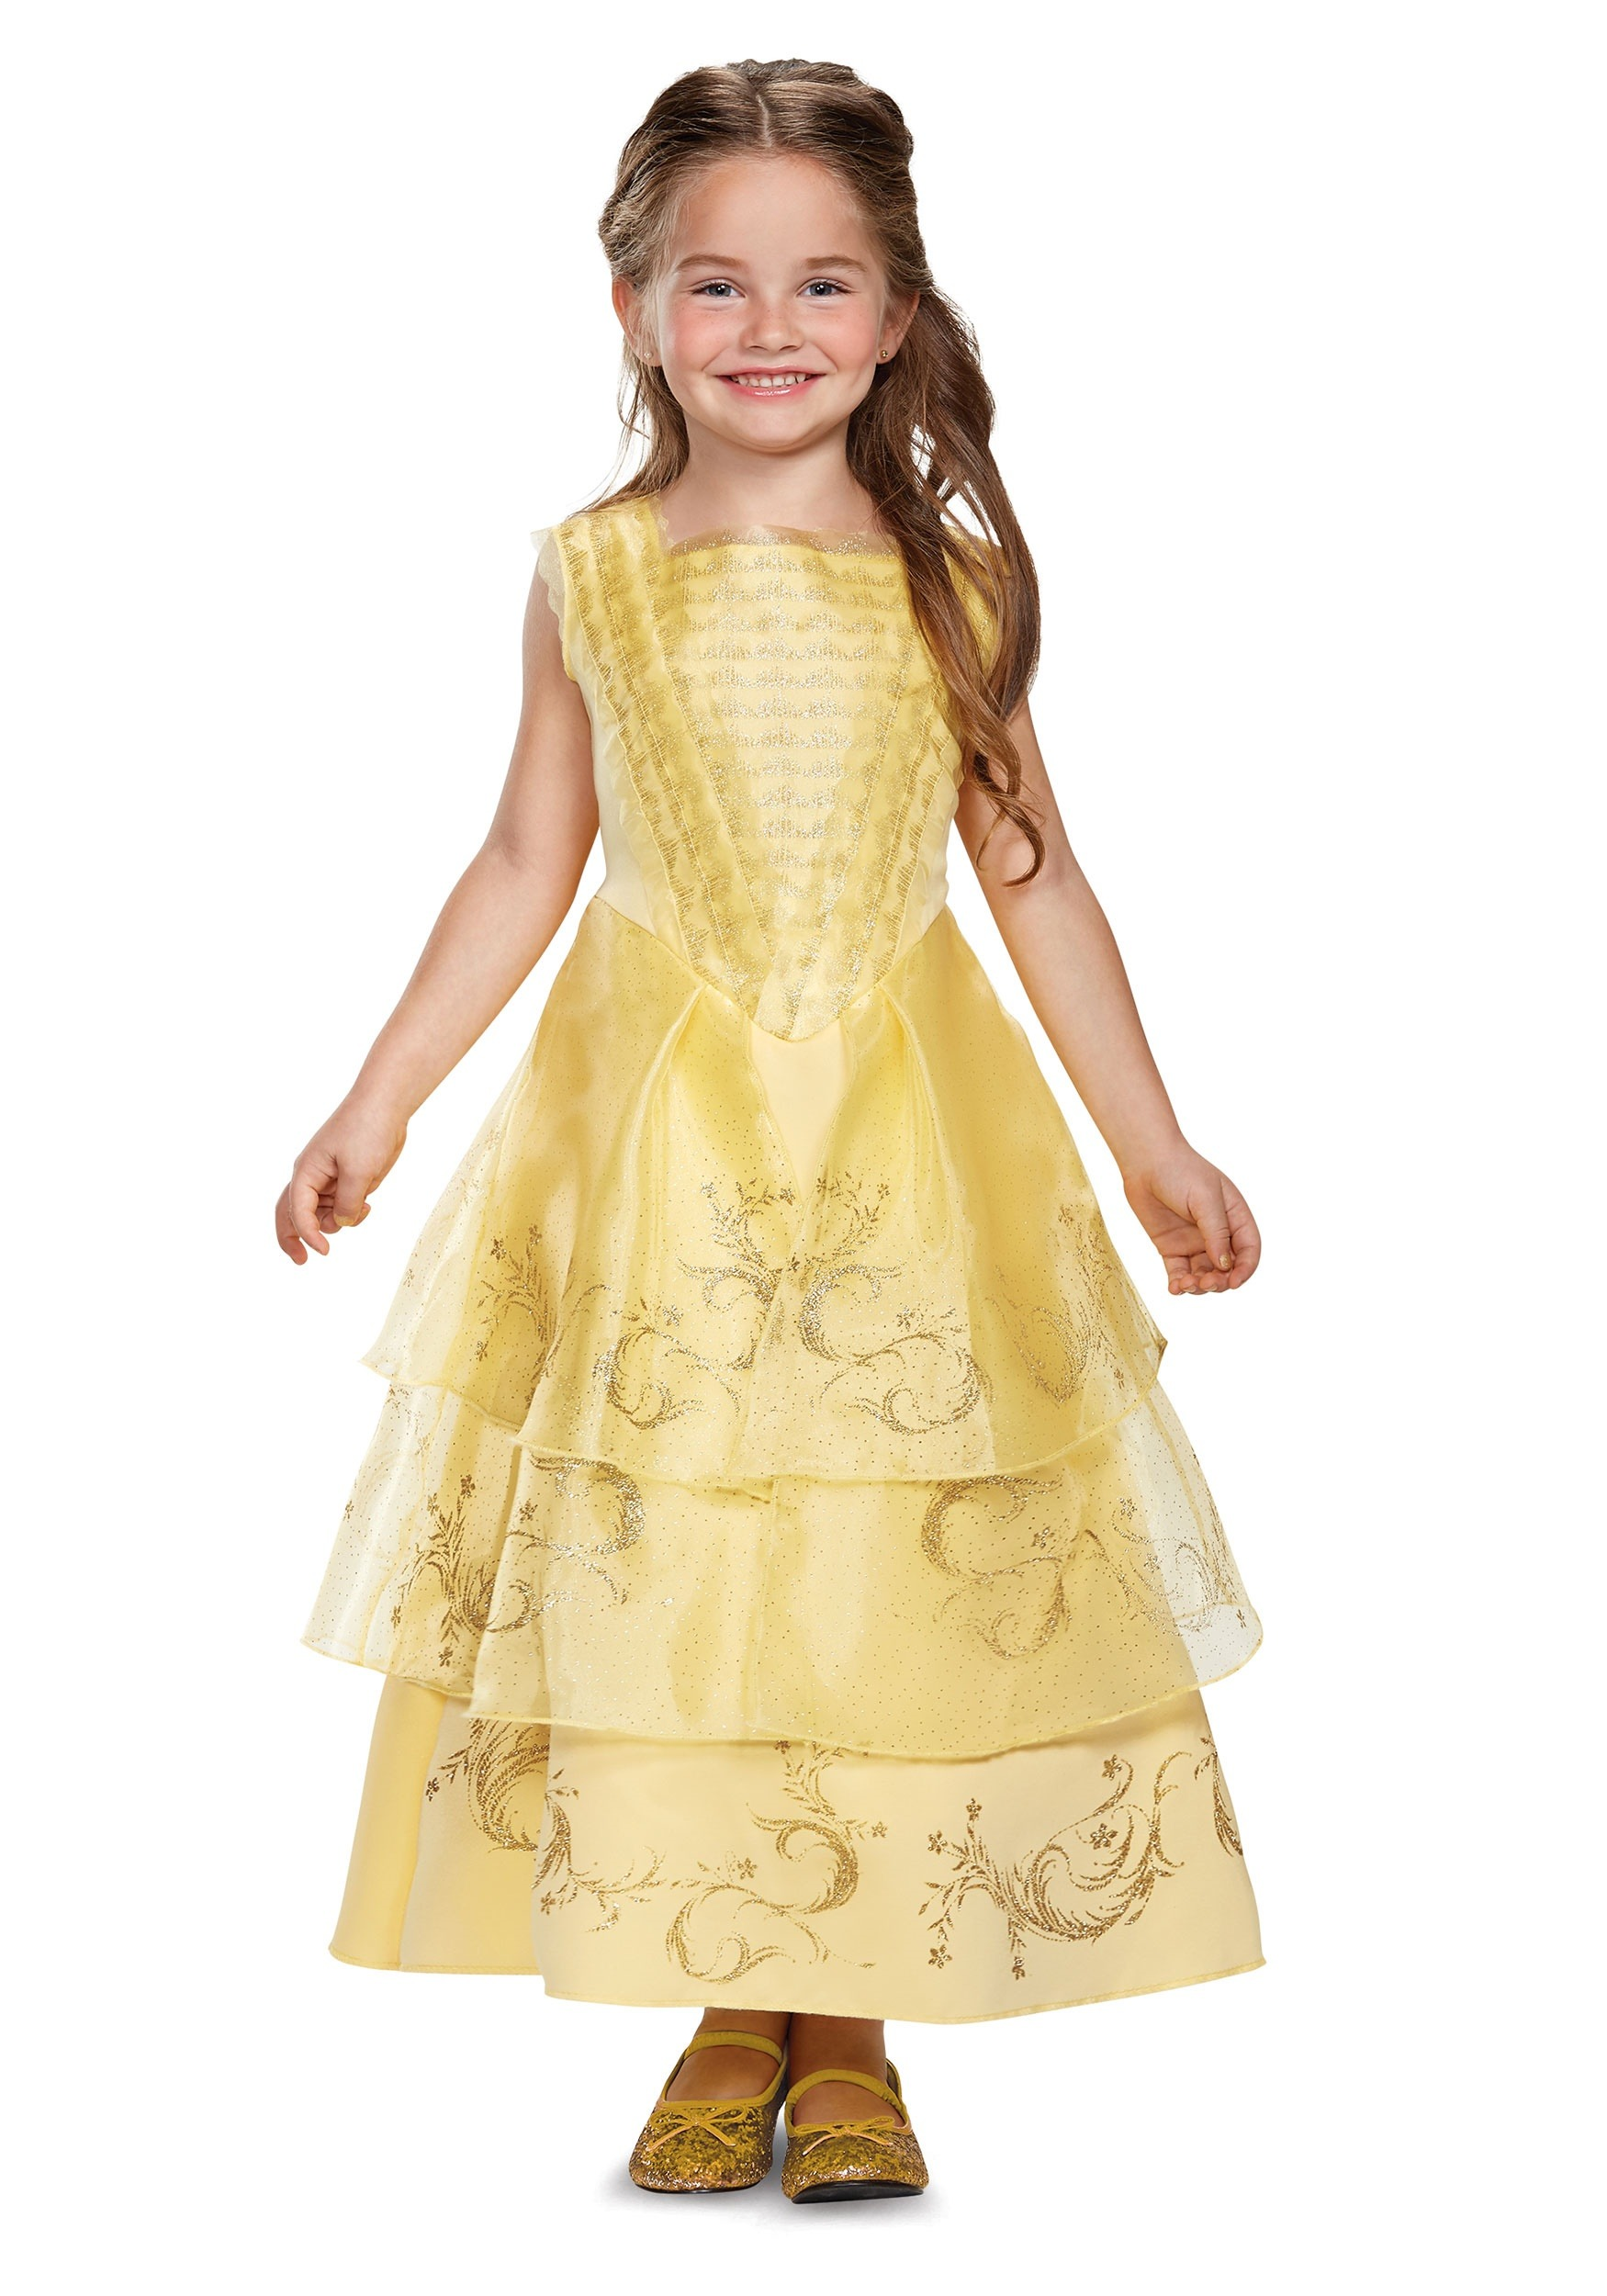 Child Belle Ball Gown Deluxe Costume Beauty and the Beast live action movie style yellow gold color dress for girls